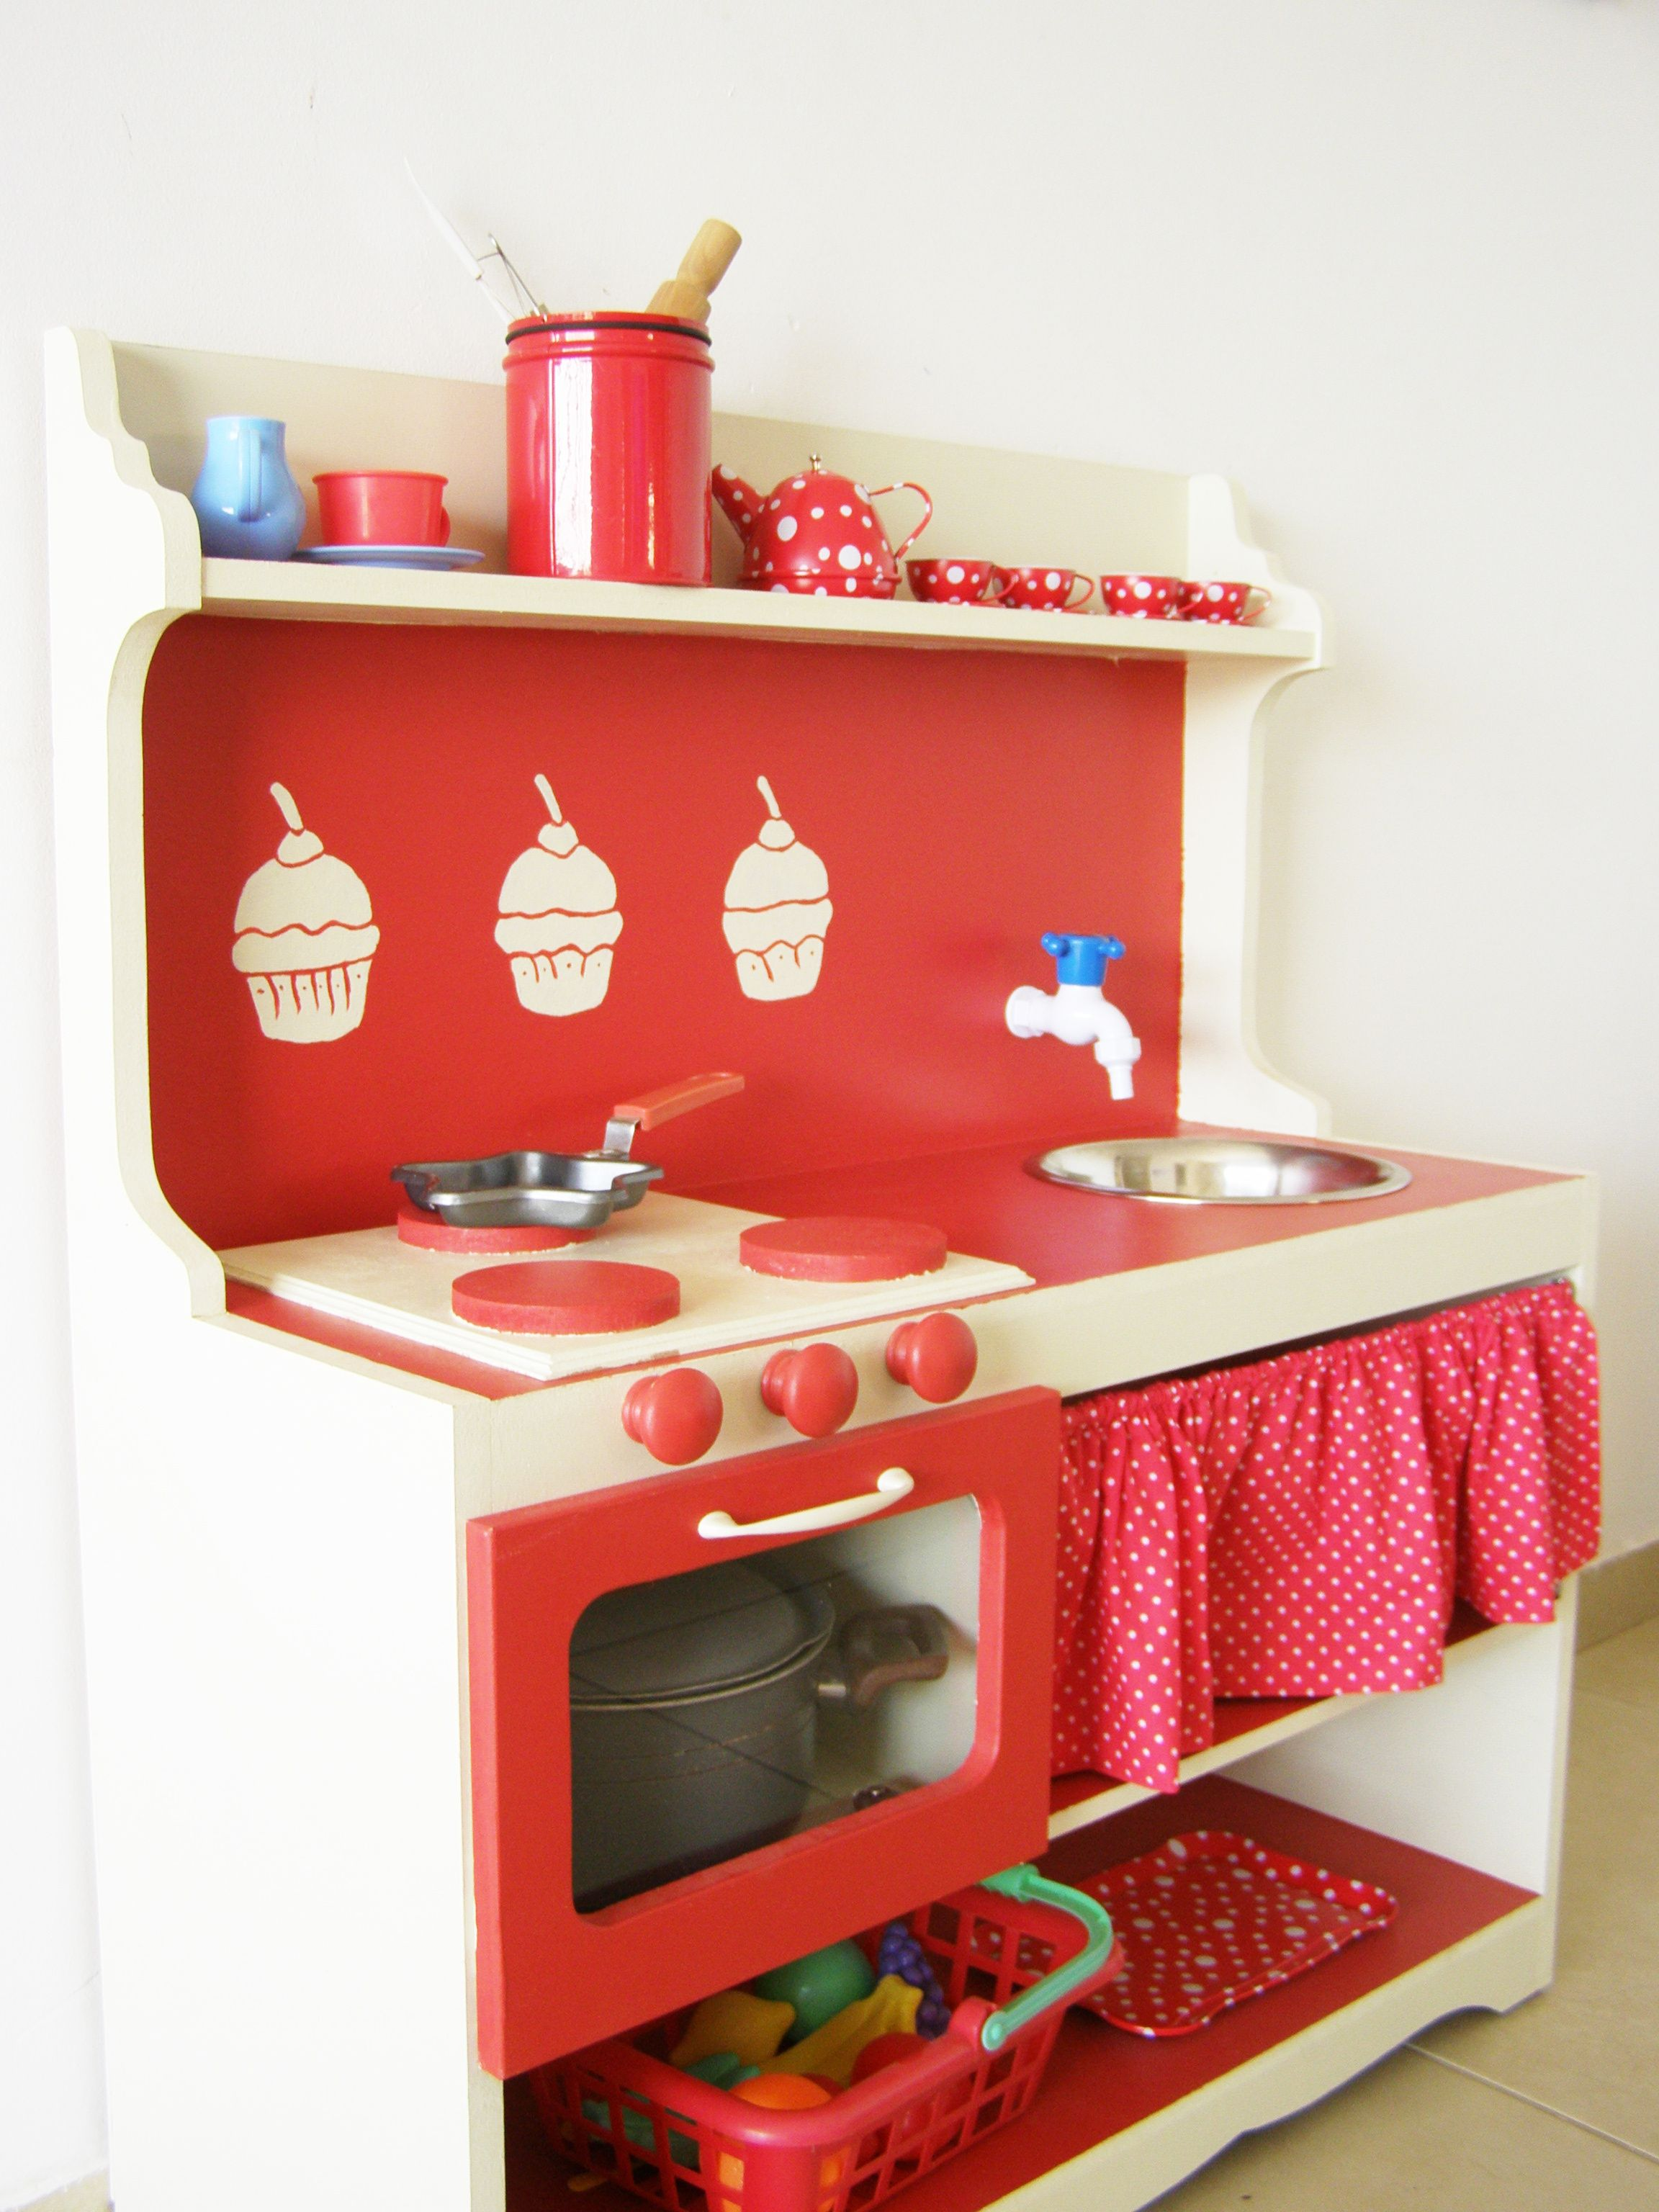 Small kitchen for kids.